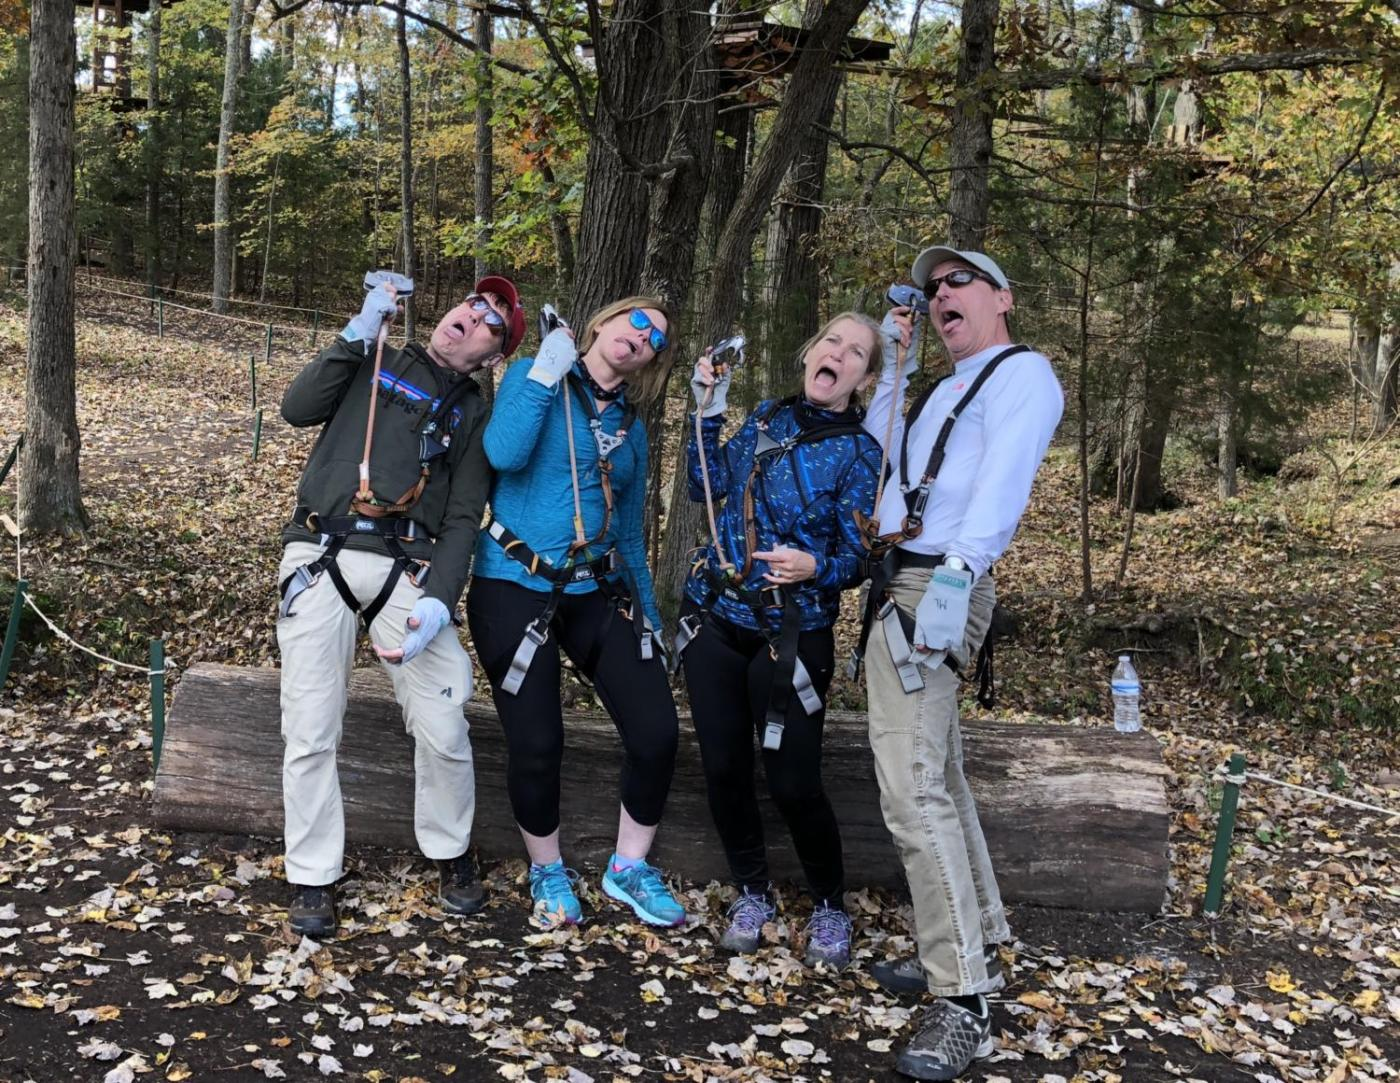 Our group after the ropes course.